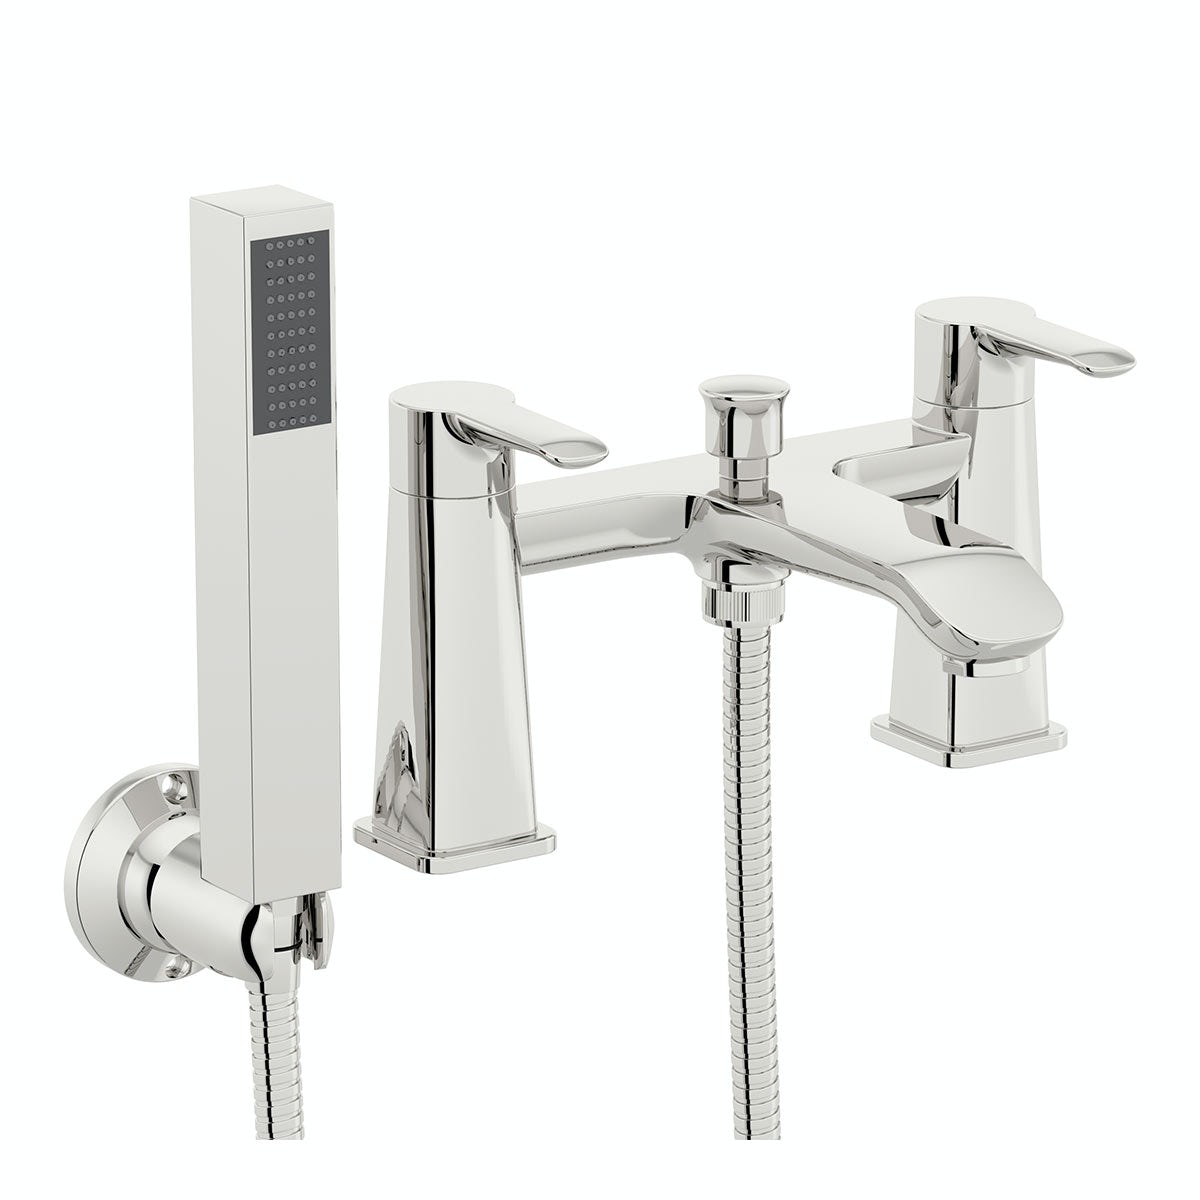 Orchard Wave bath shower mixer tap